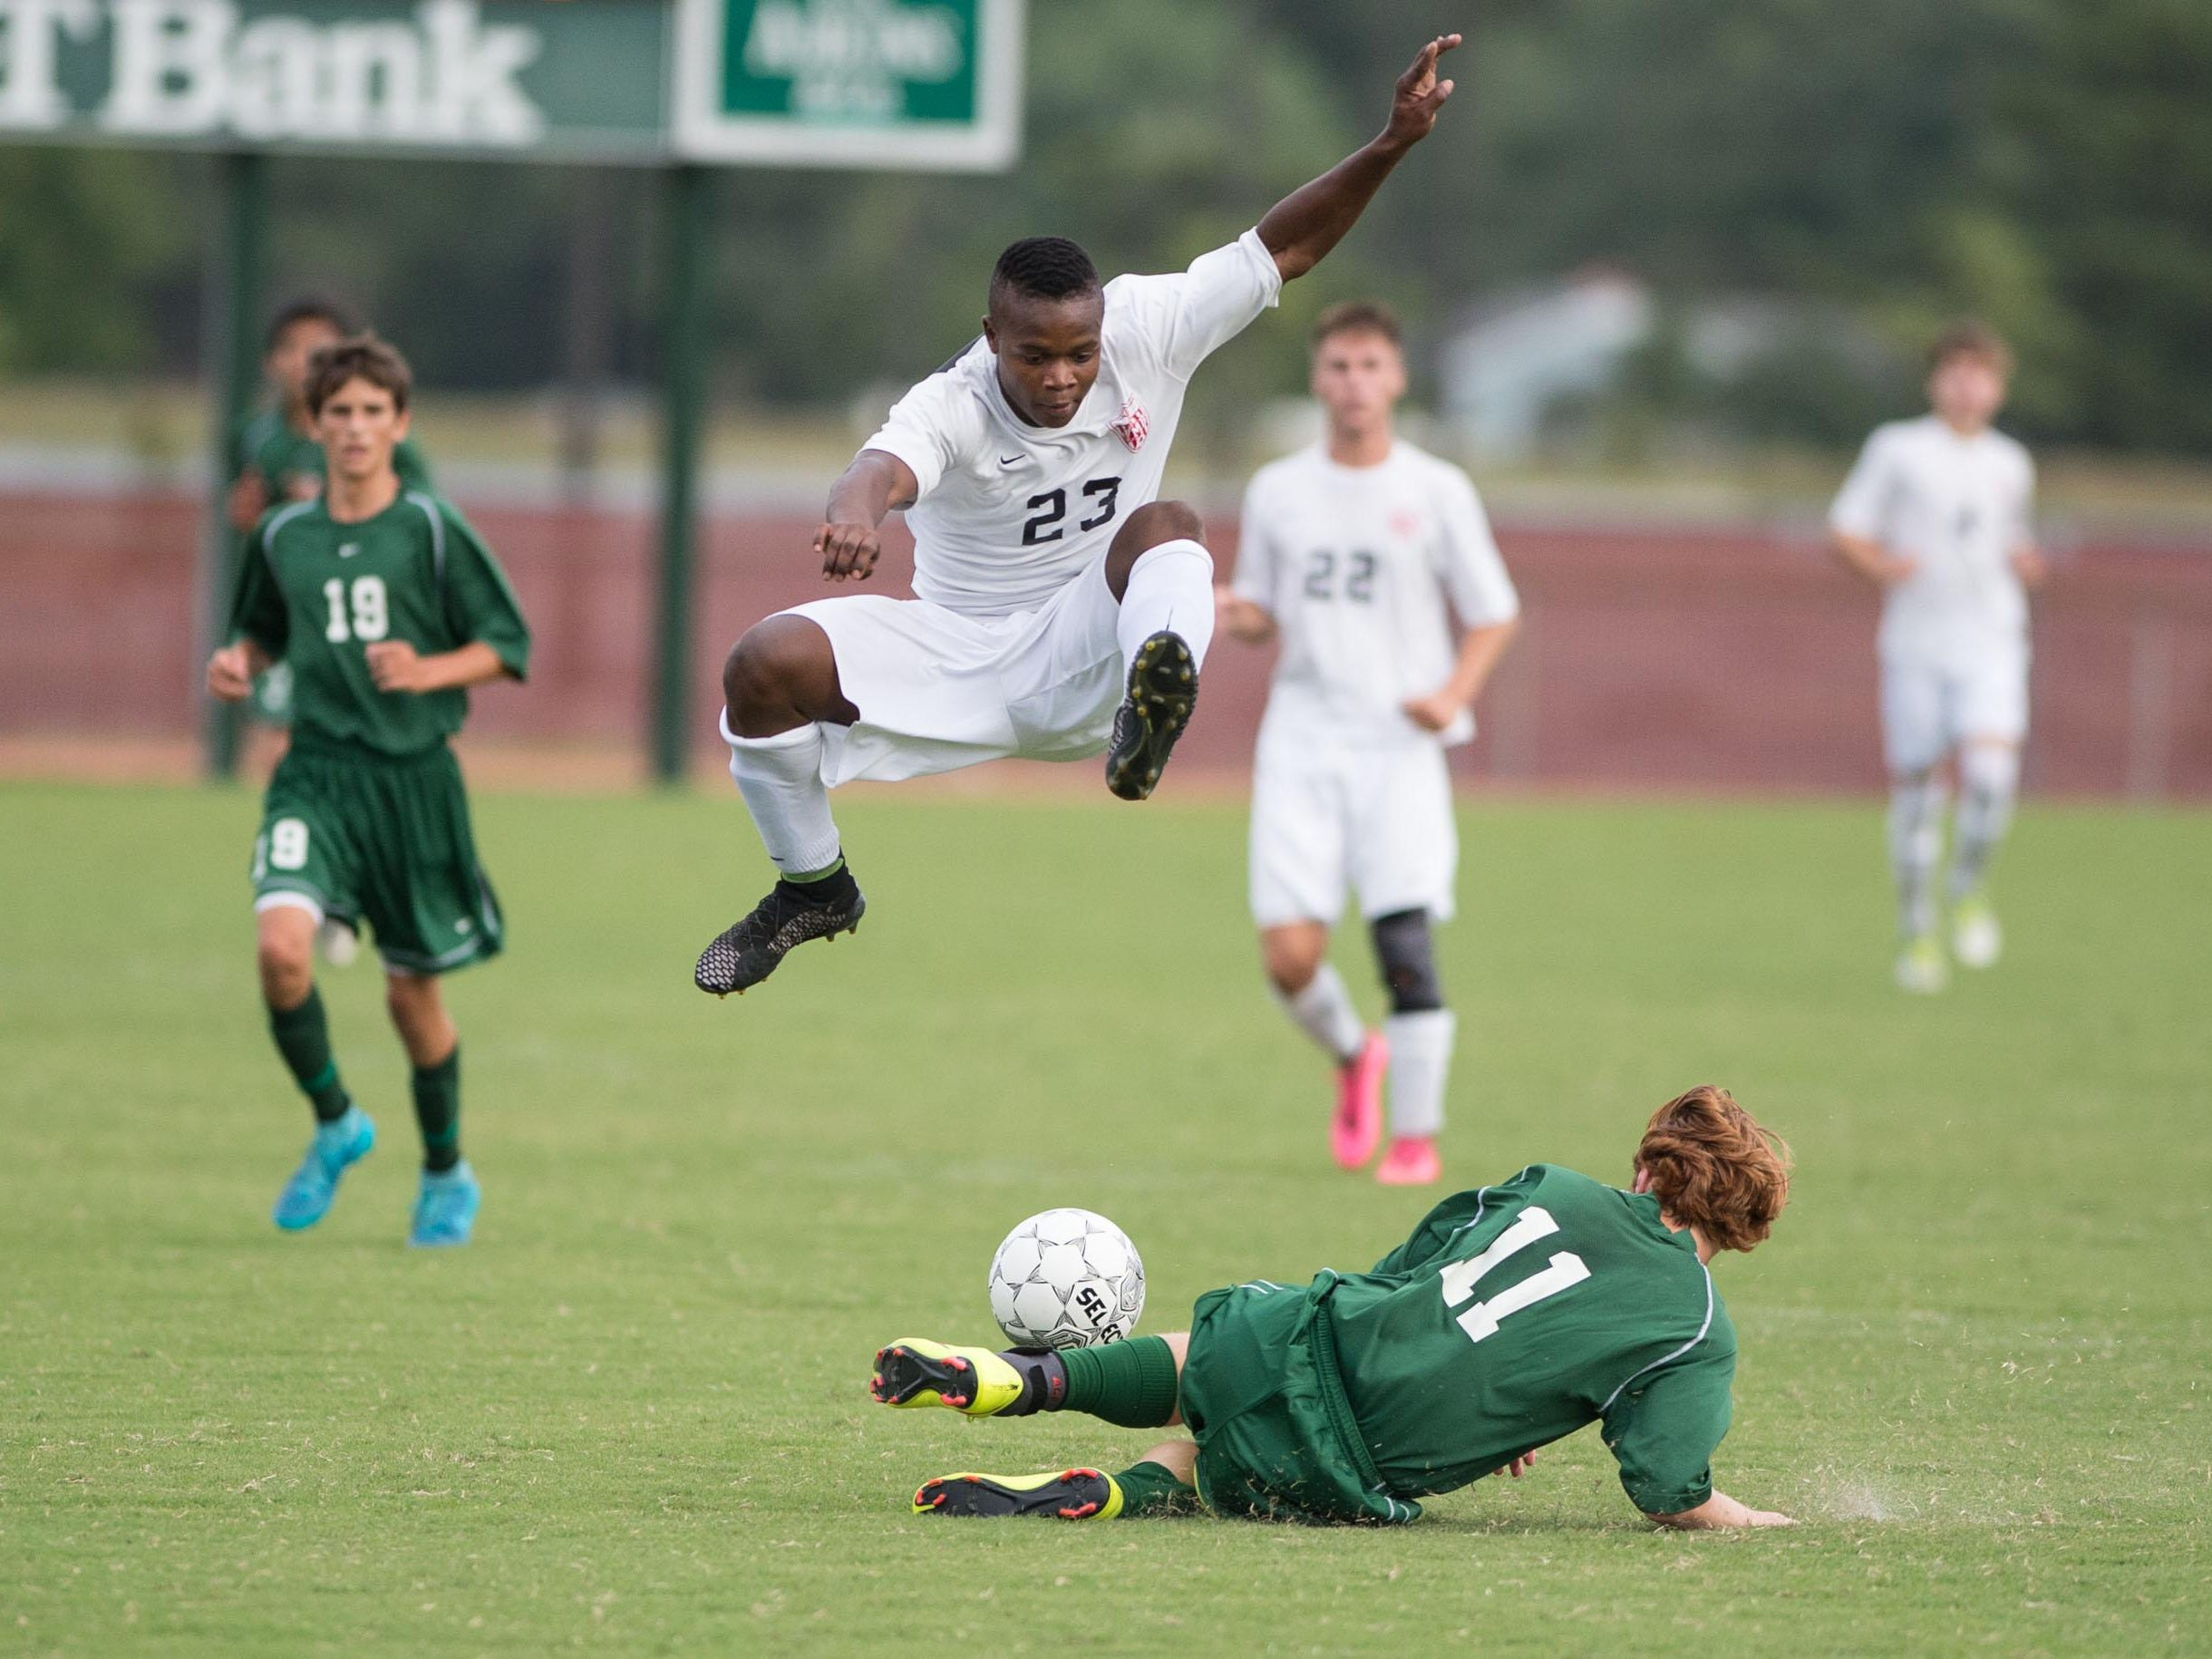 JMB's Cermy Oneus leaps over Parkside's Max Corry after a slide tackle.